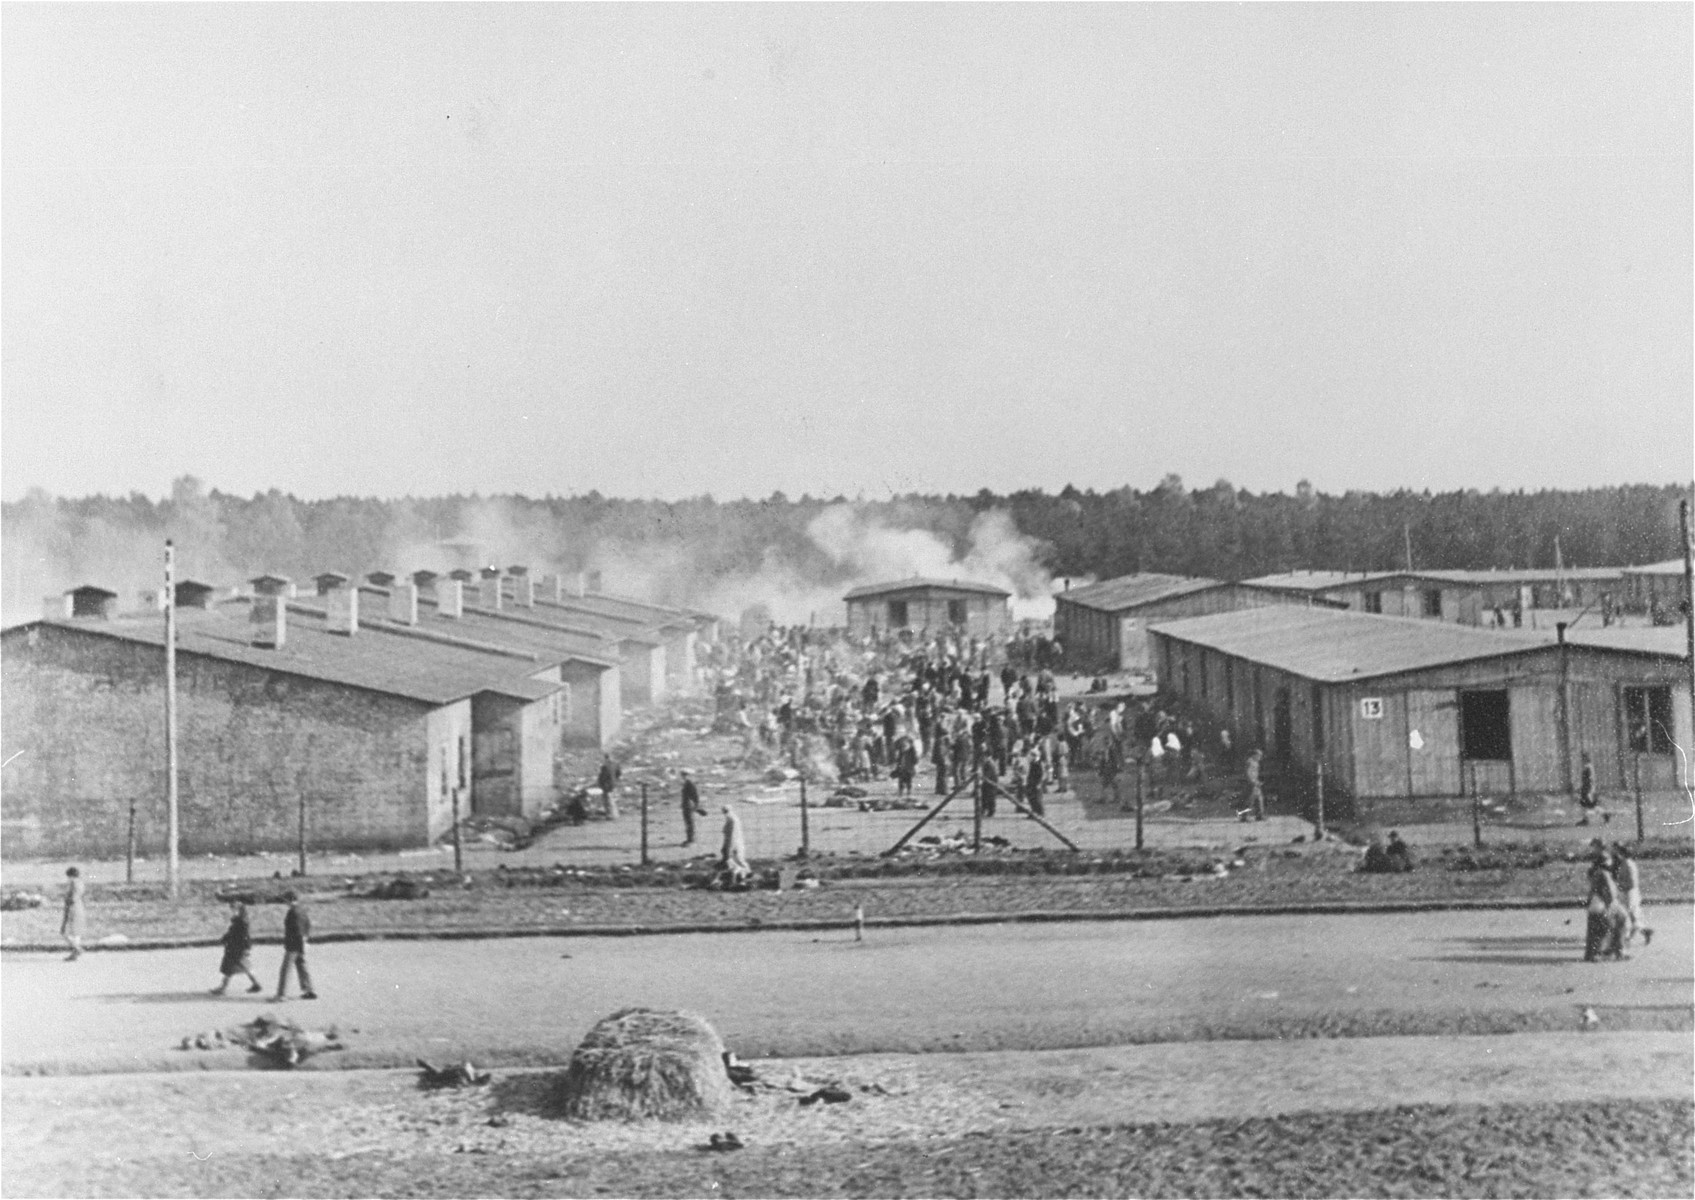 View of Bergen-Belsen concentration camp after liberation.